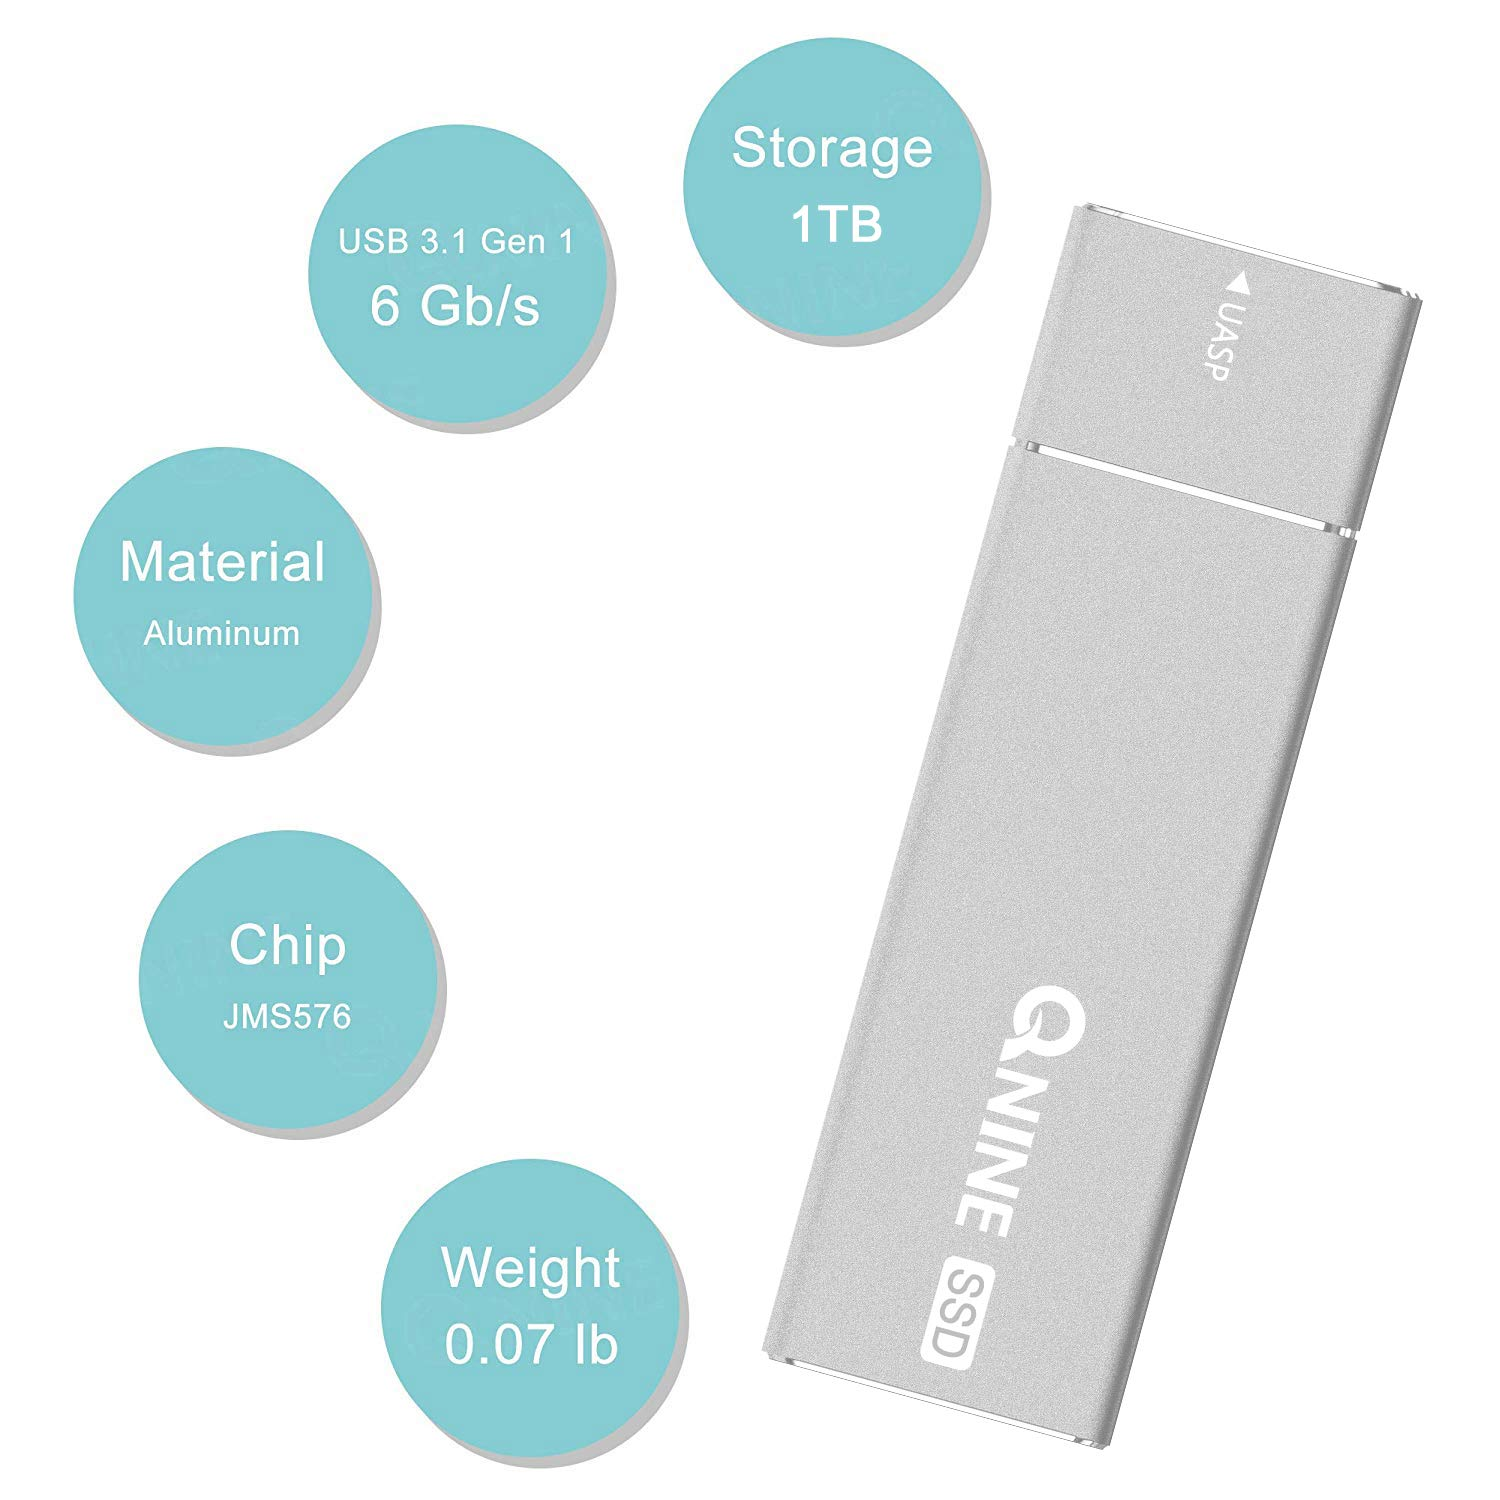 QNINE External SSD Hard Drive 1 TB (1.1 oz Weight), Portable SSD USB C for MacBook, USB 3.1 High Speed External SSD for Laptop, Xbox One X, etc by QNINE (Image #2)